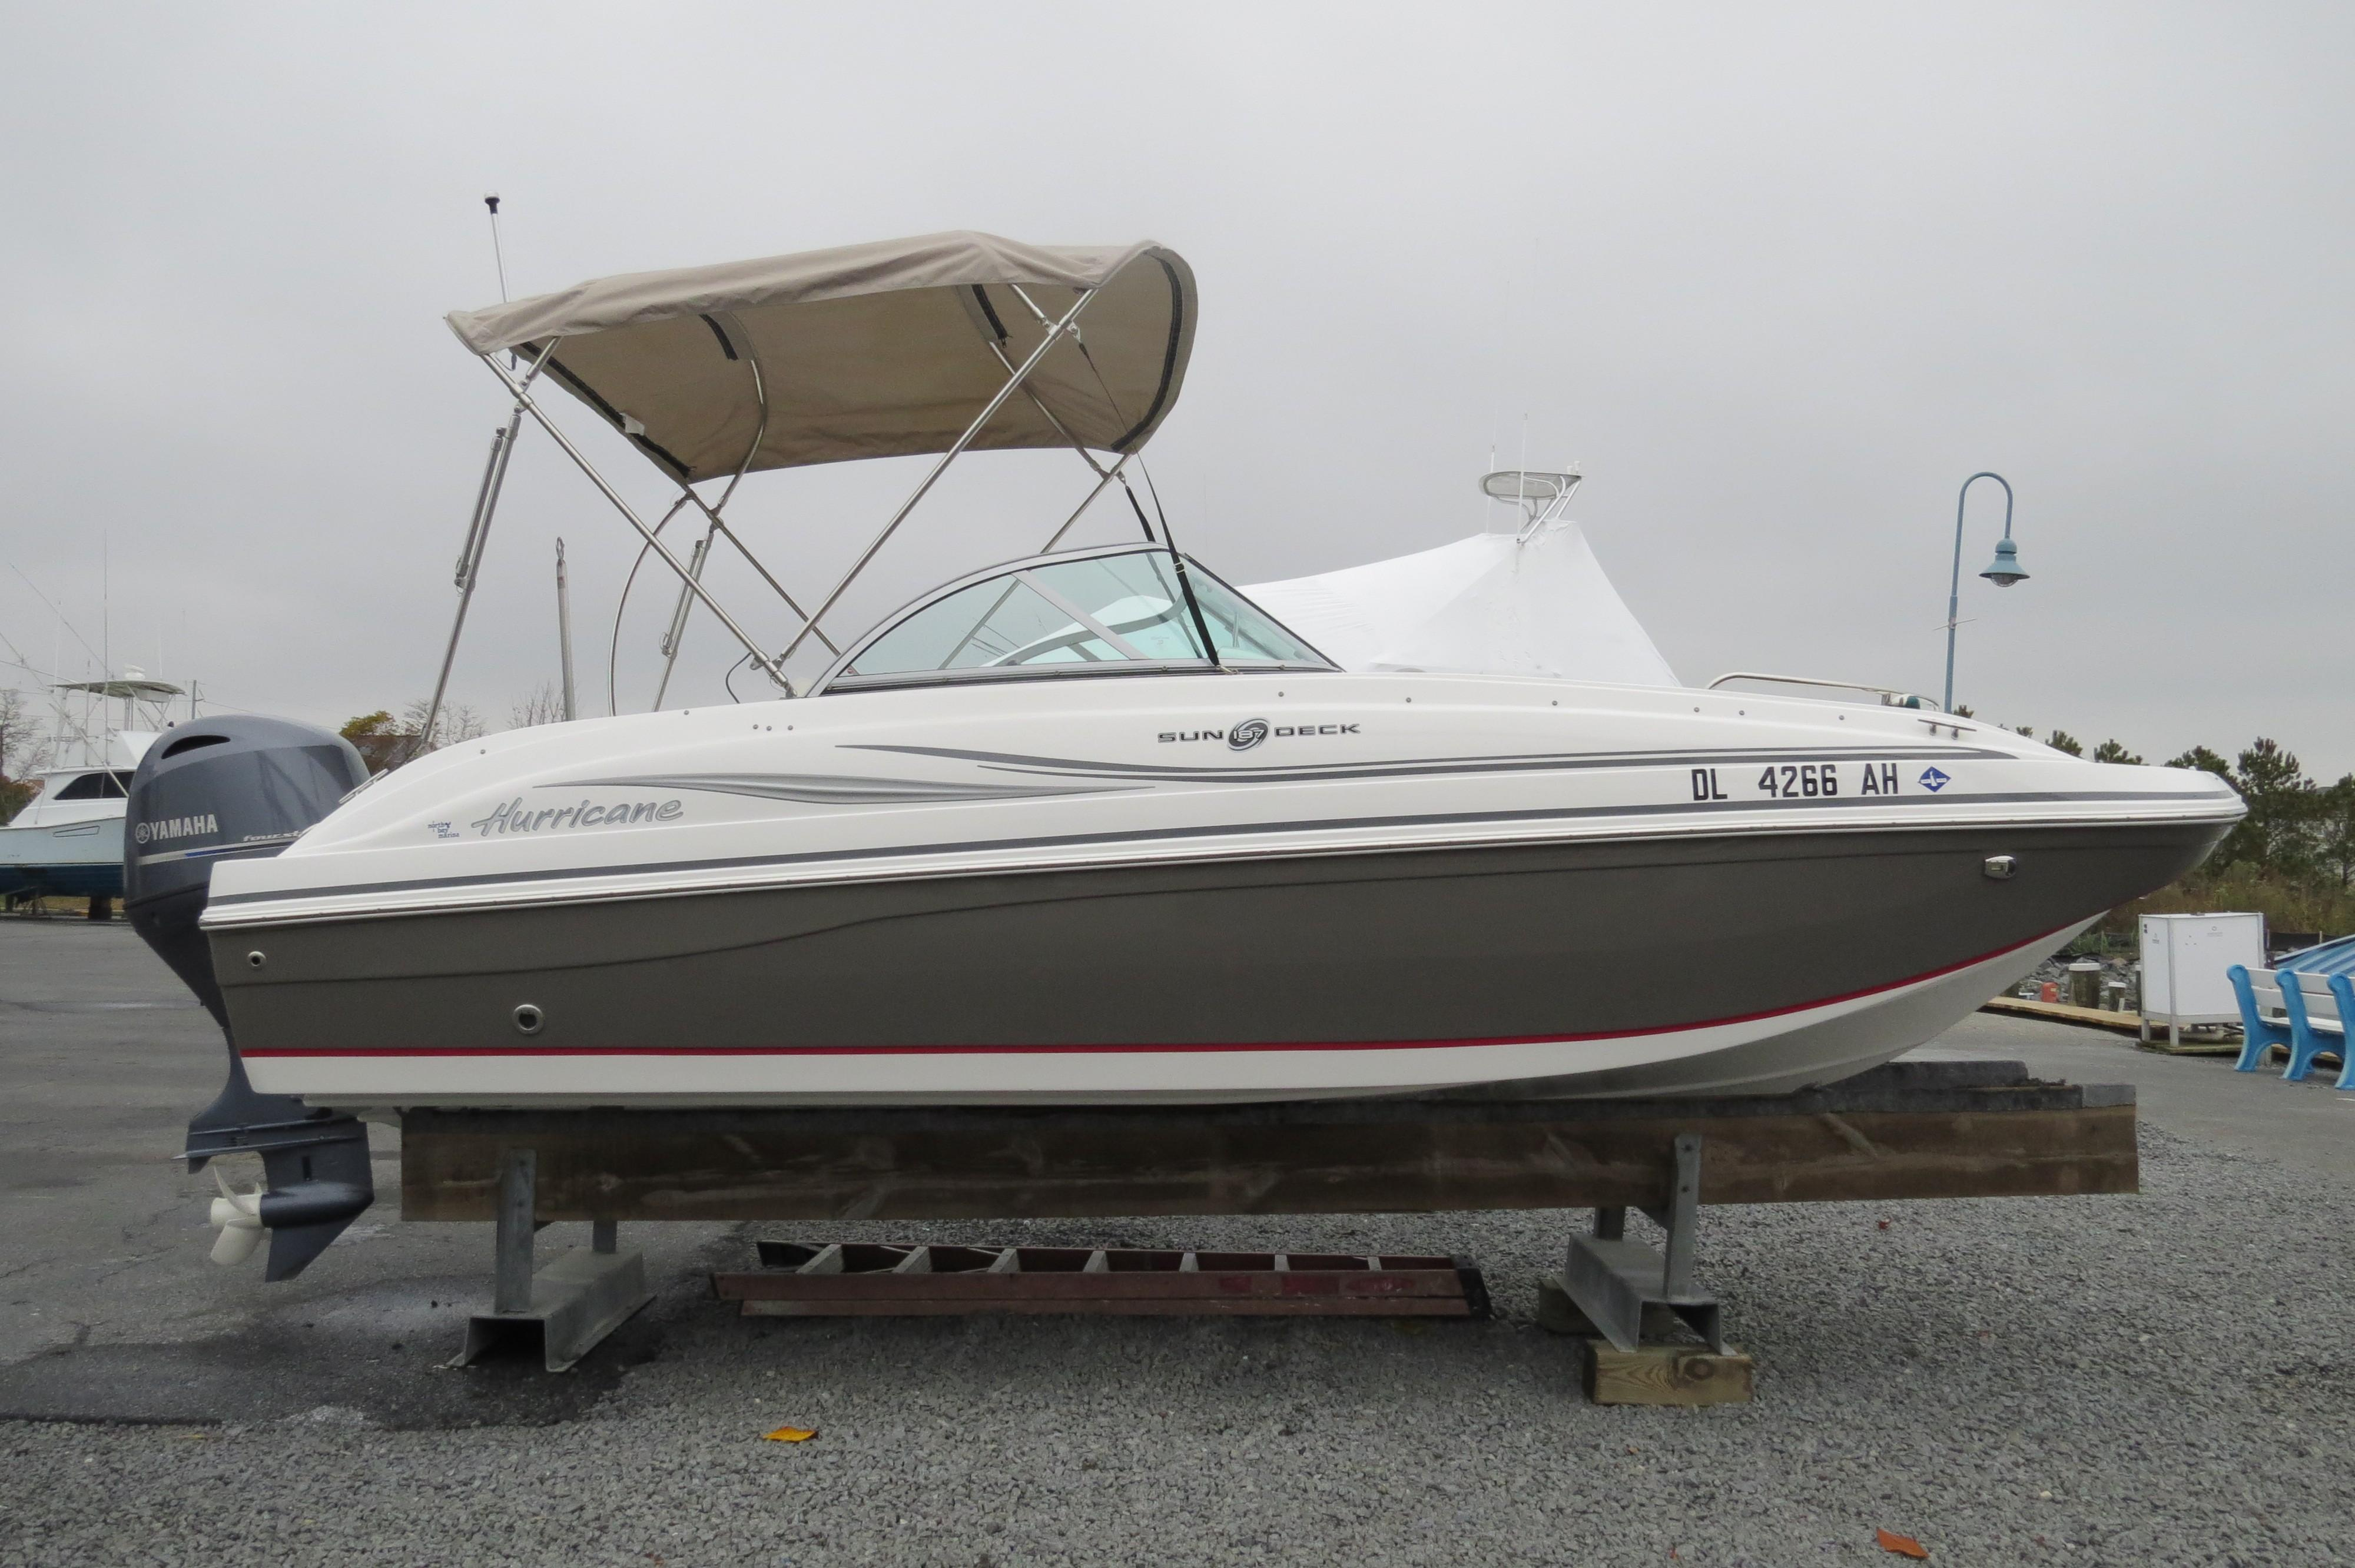 Thundercraft Boat Wiring Harness Diagrams 2015 Hurricane Sun Deck 187 Power For Sale Www Yachtworld Com Manufacturer